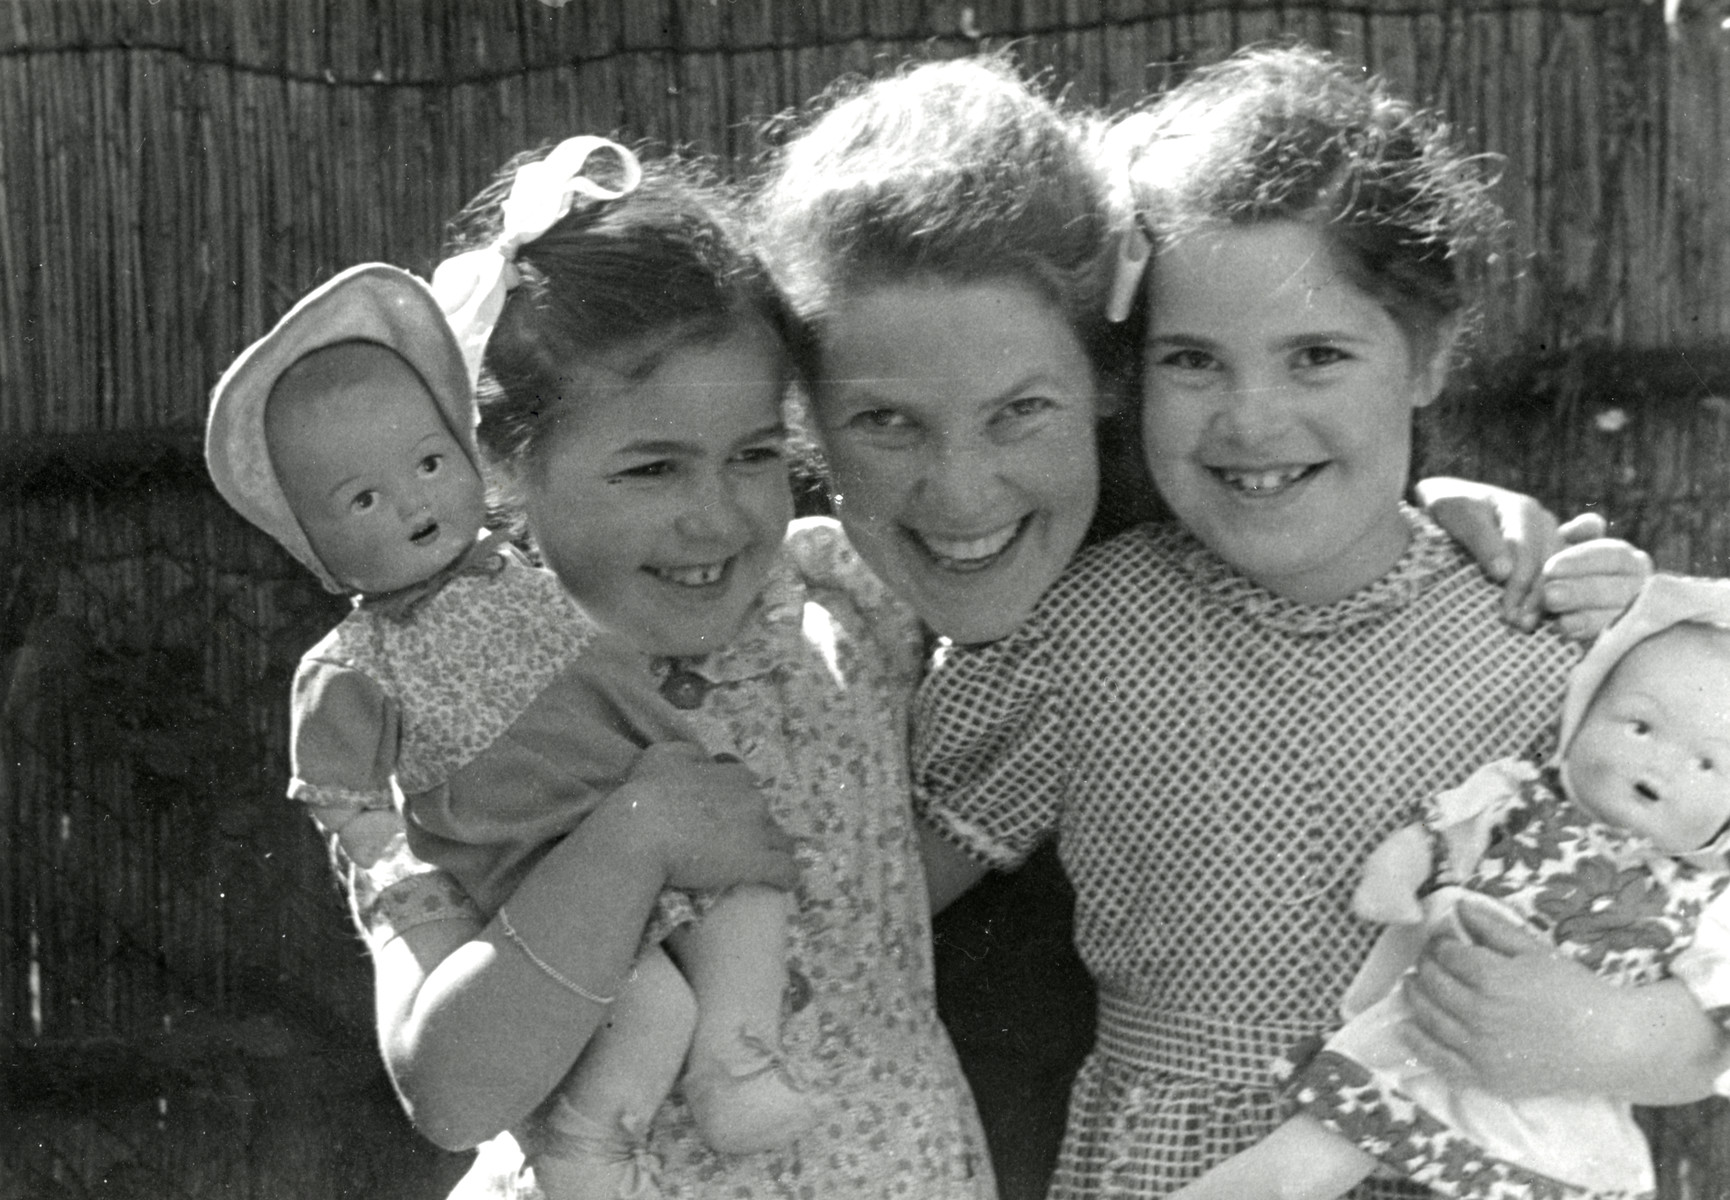 Eva Tikotin hugs her two young daughters, Johanna and Leentje, prior to their going into hiding.  She gave Leentje this photograph to take with her into hiding so that she would remember her mother, but Leentje had to give it up for security reasons.